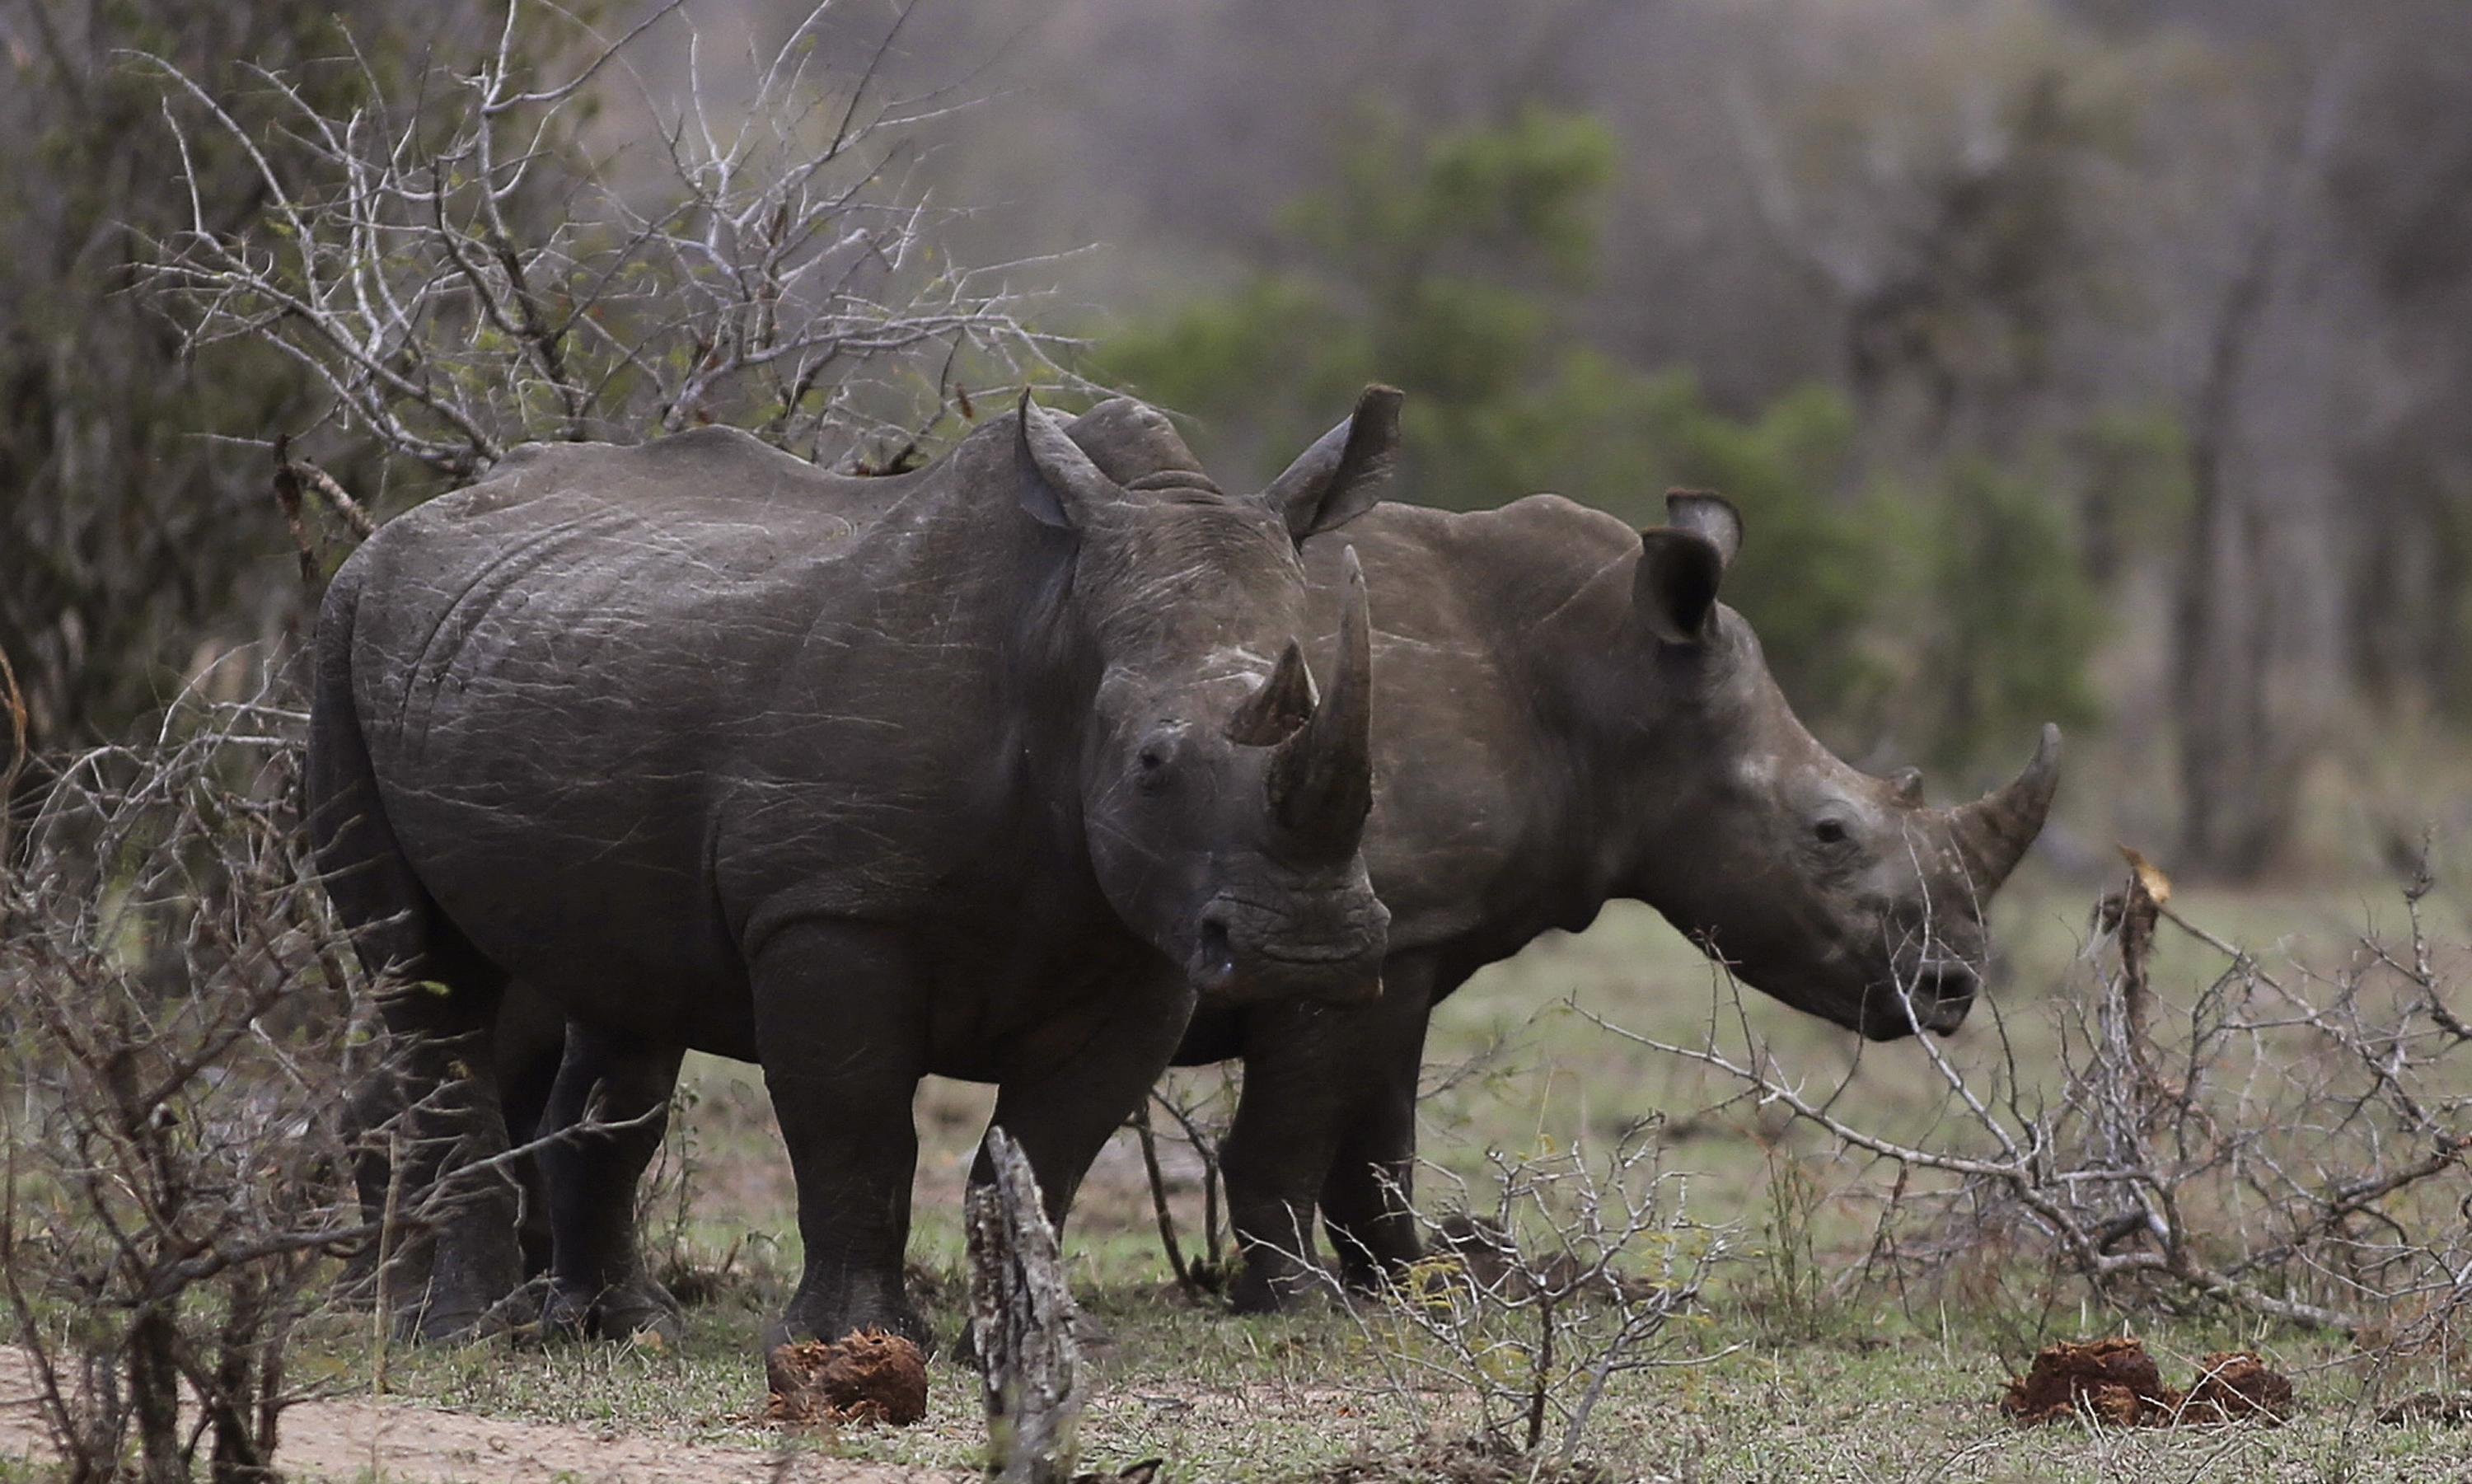 Rhinoceros horn online auction: few buyers after outraged protests